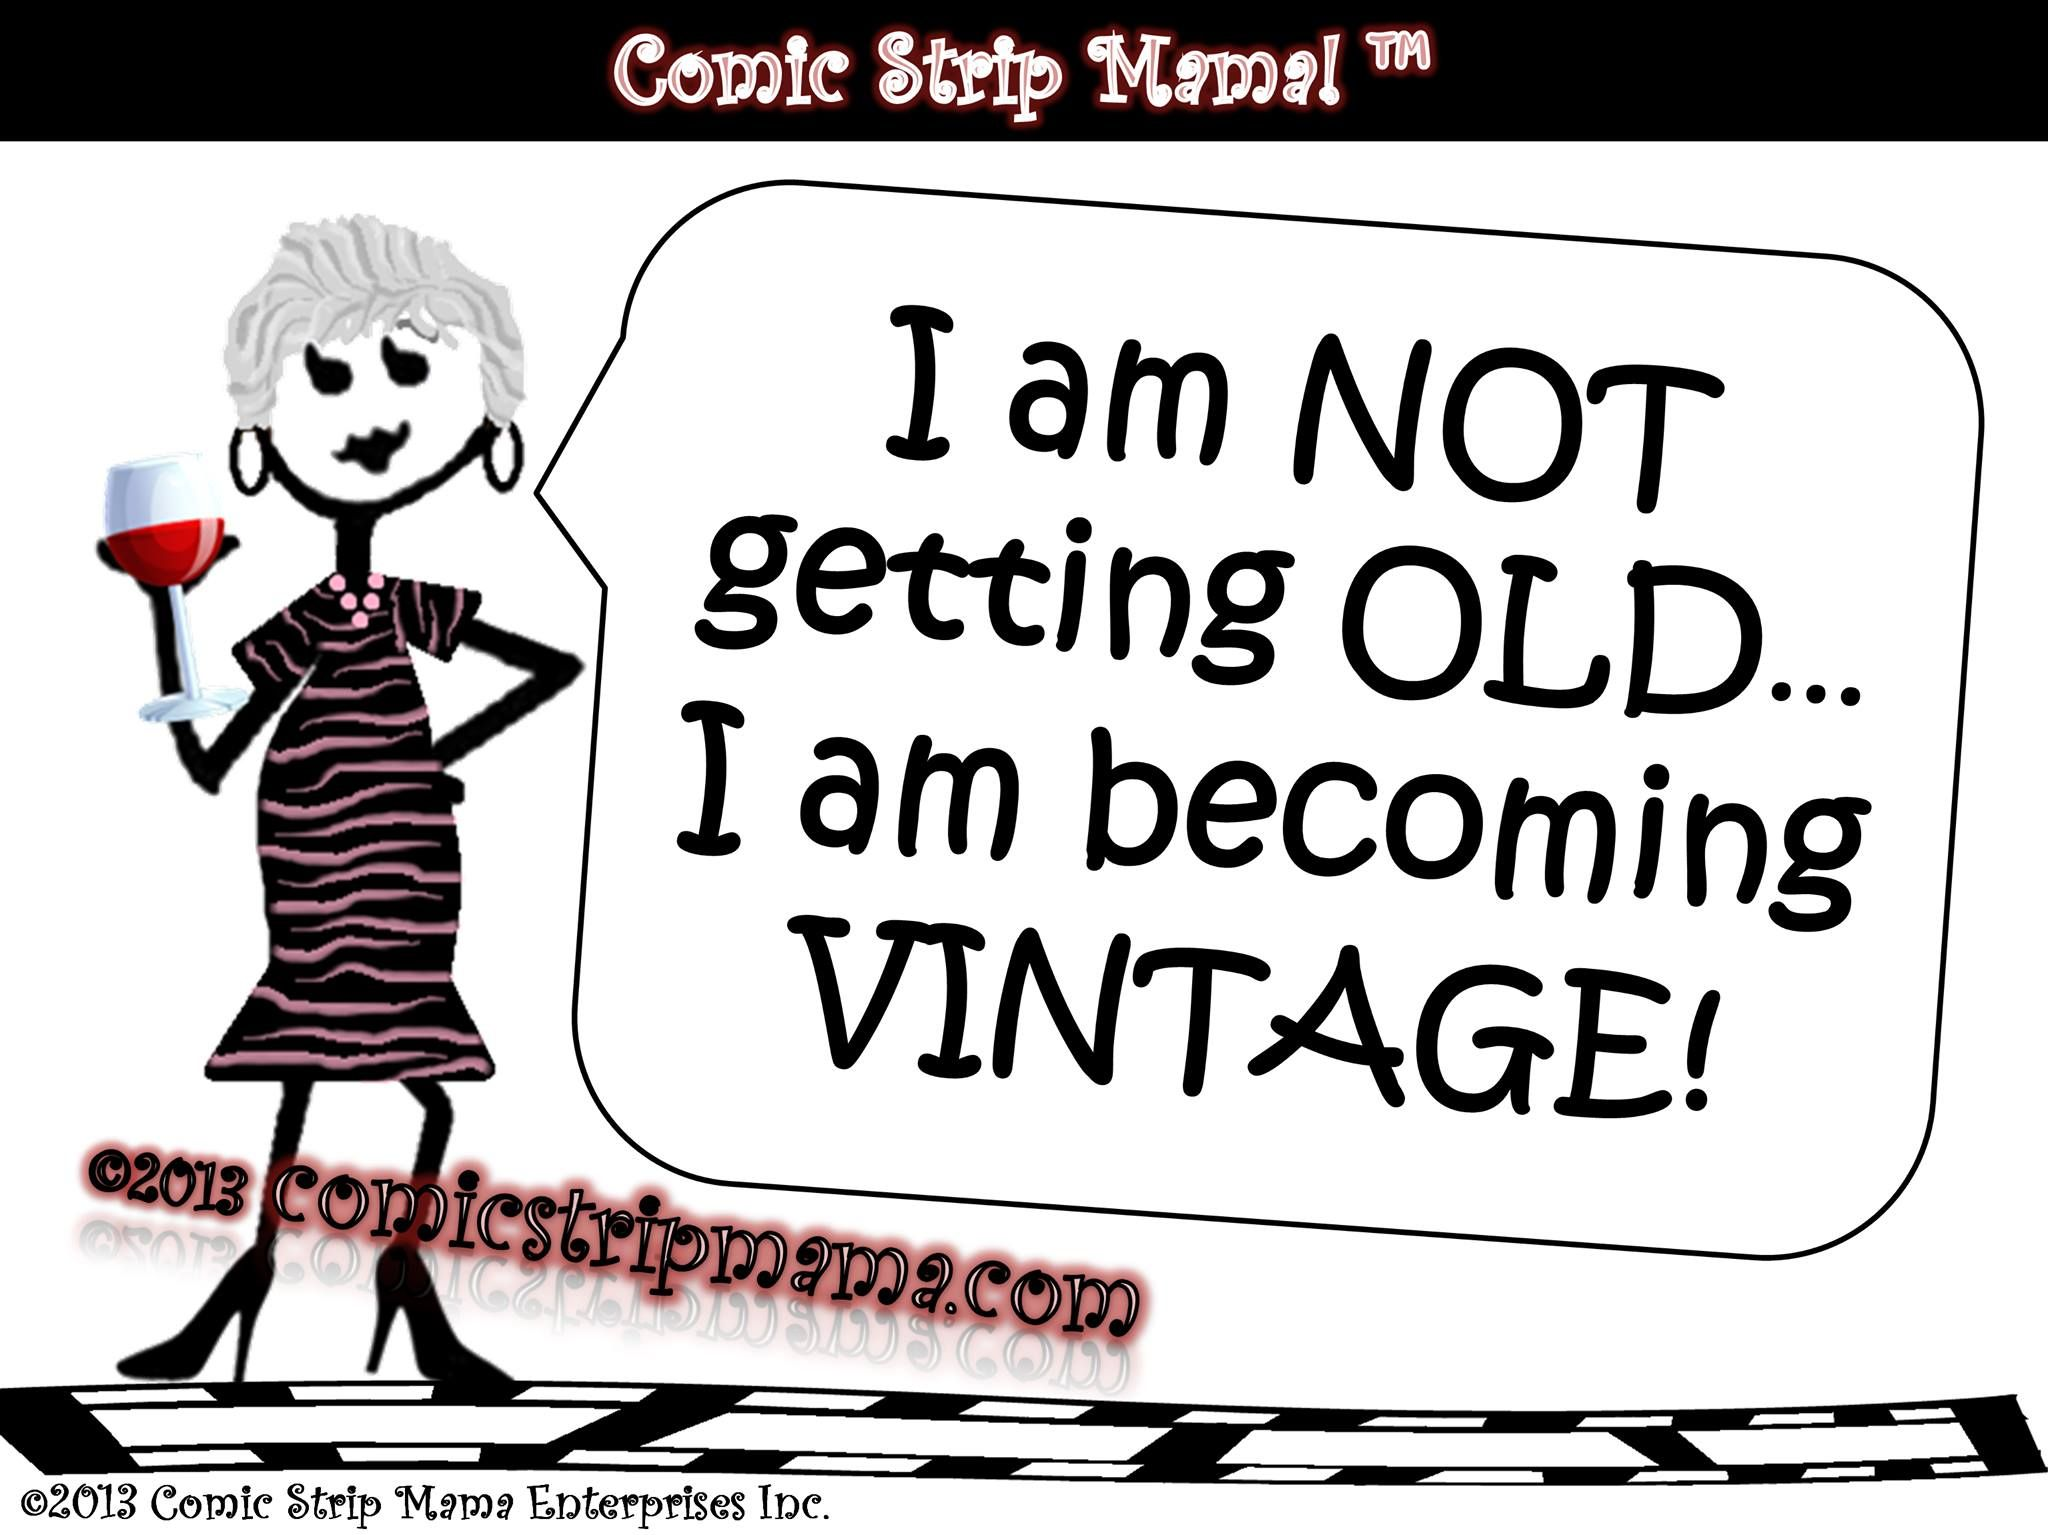 Things Get Better With Age Growing Older Doesn T Mean You Have To Grow Up Wine Humor Wine Quotes Getting Old